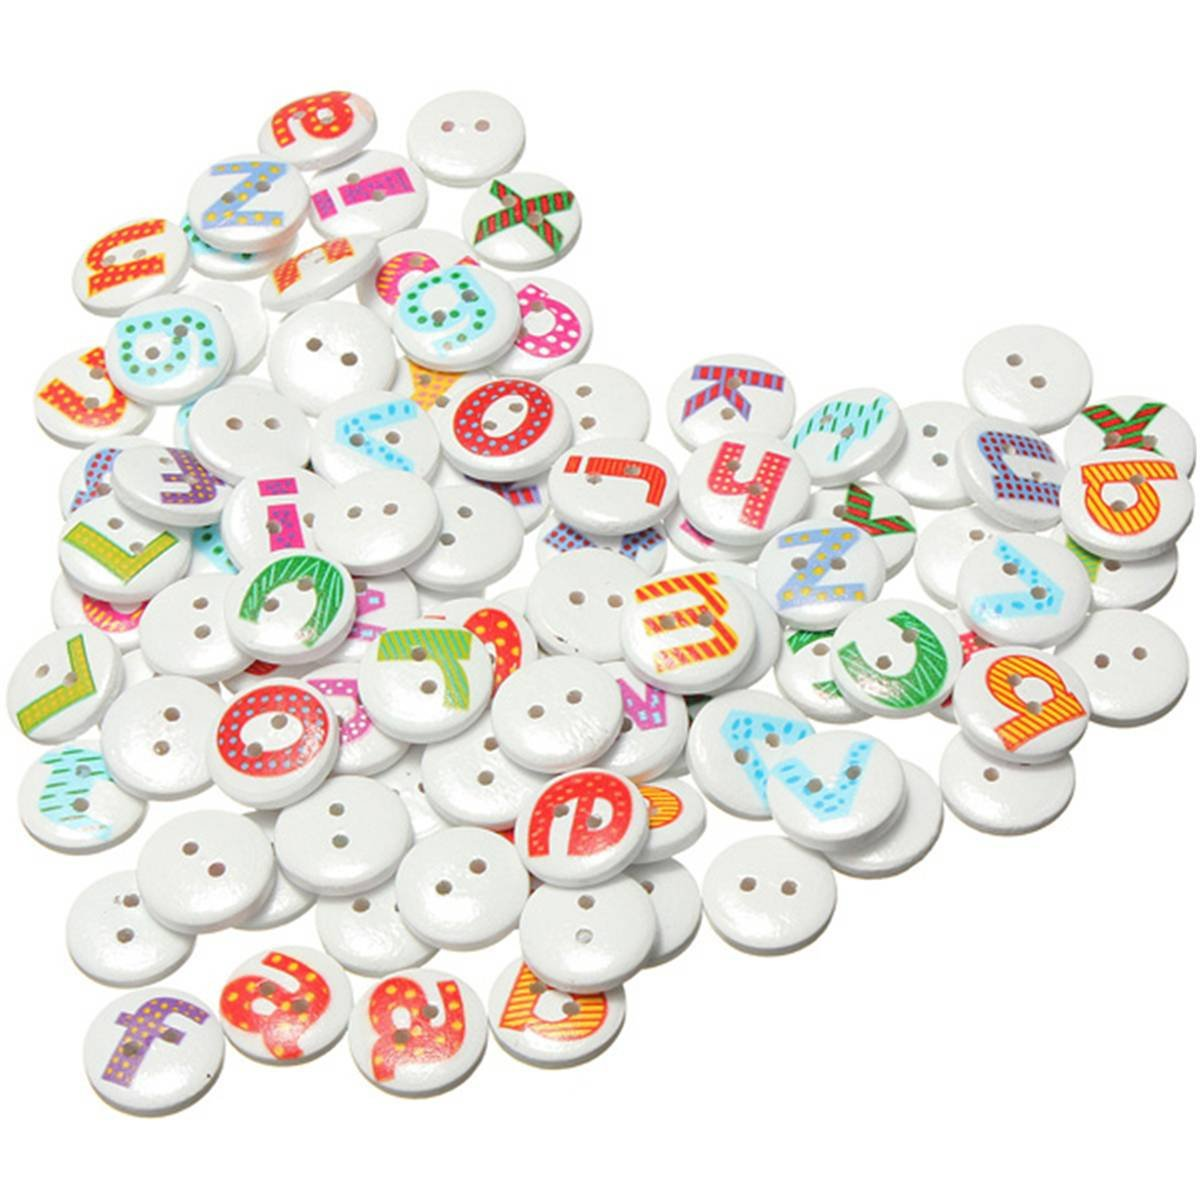 100Pcs Mixed Painted Letter Alphabet Wooden Sewing Button Scrapbooking ...